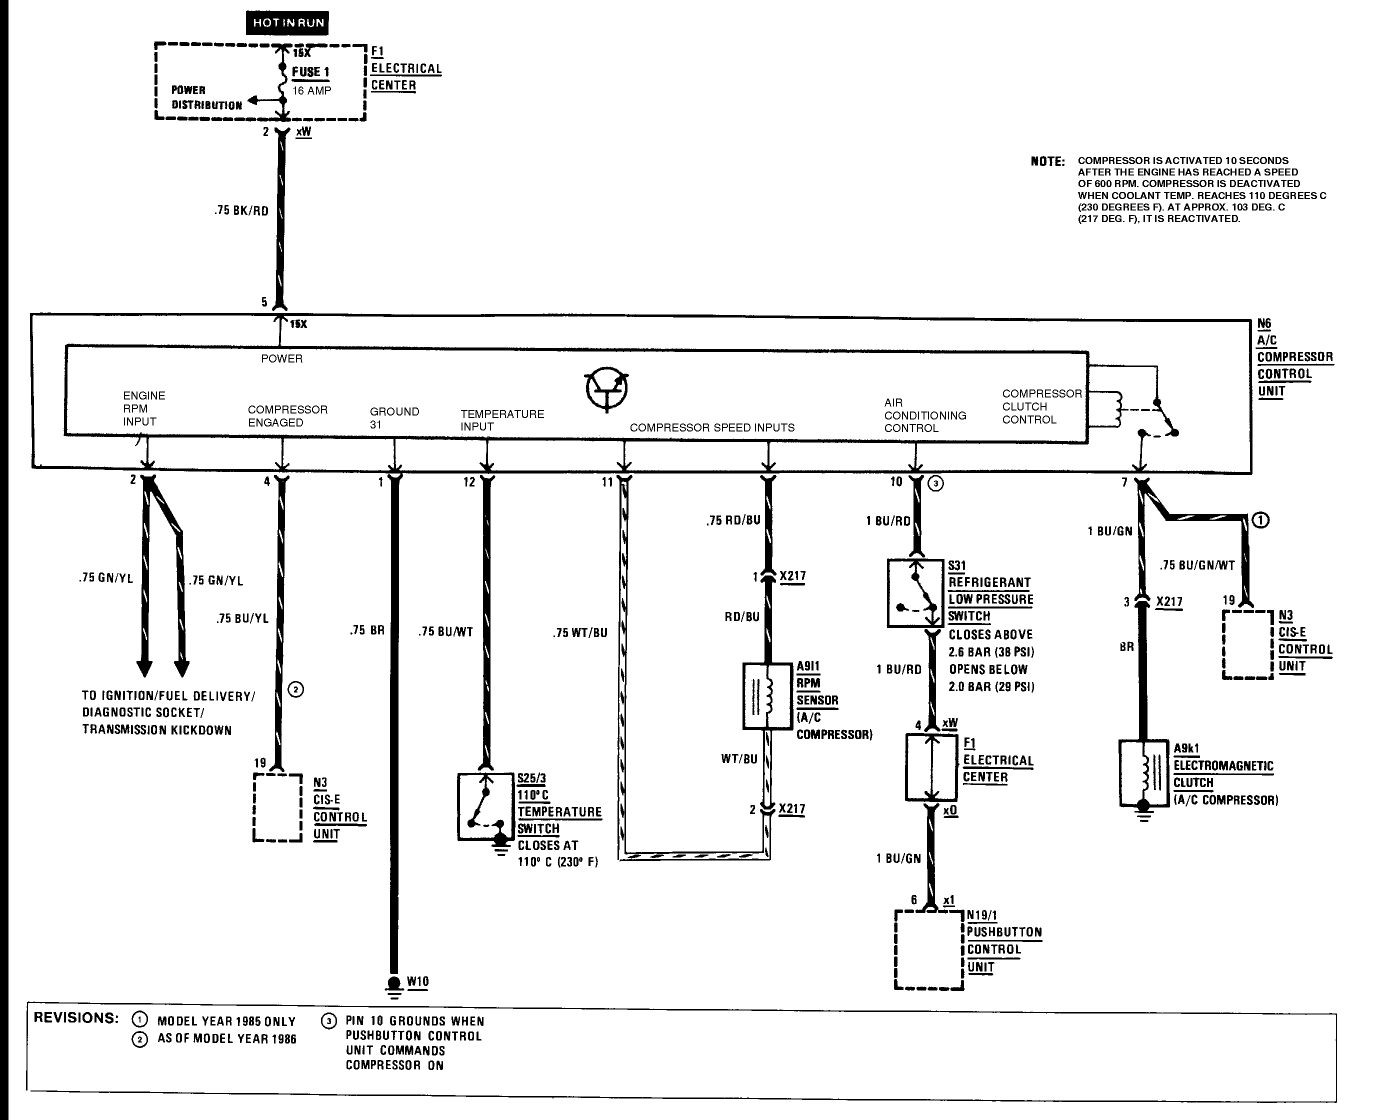 190e Fuse Box Layout Wiring Library Schematics For Mercedes I Need A Detailed Schematic And Diagnostic Chart